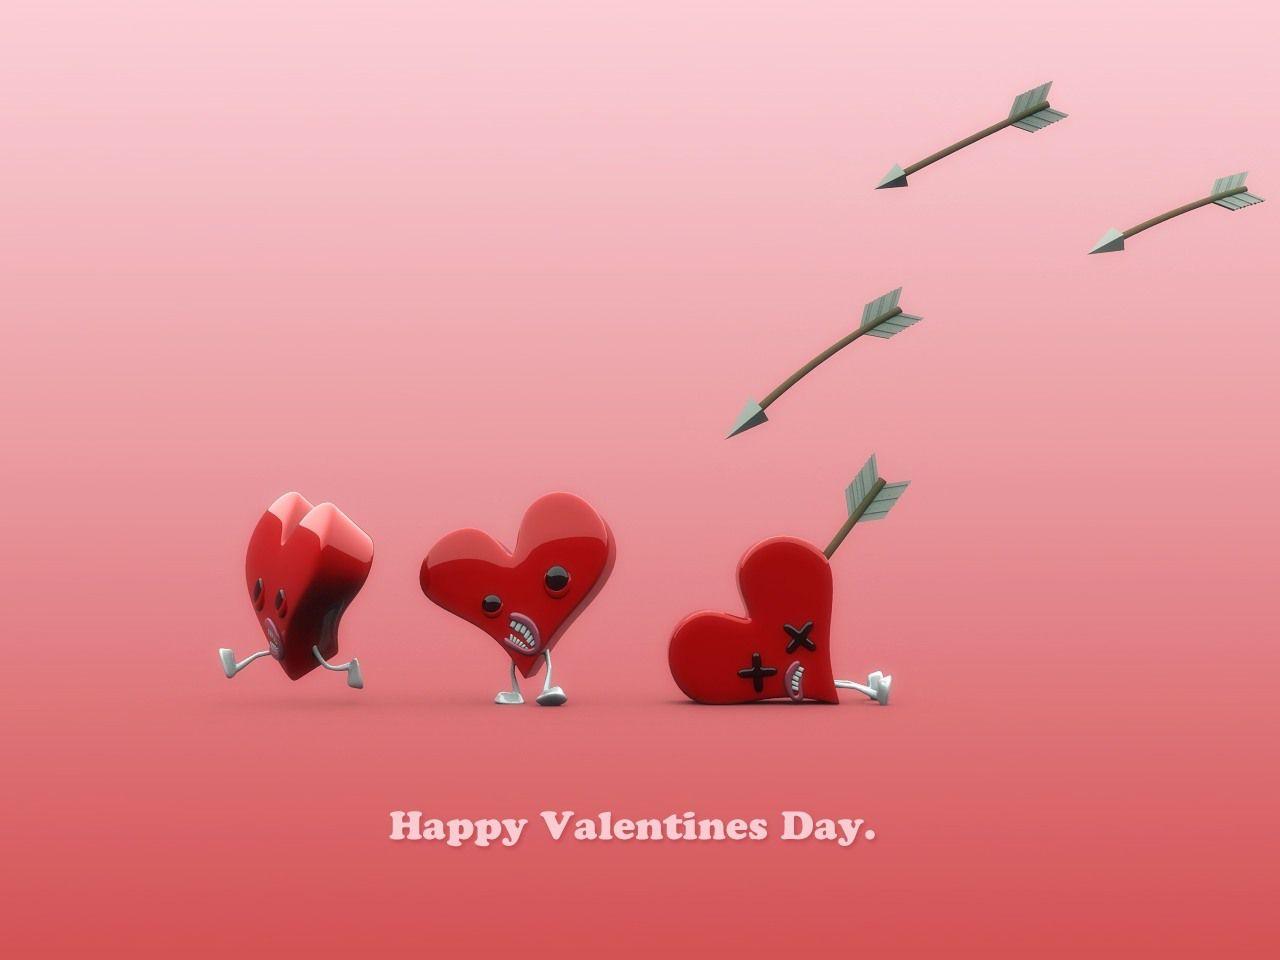 17 free valentine's day wallpapers and backgrounds